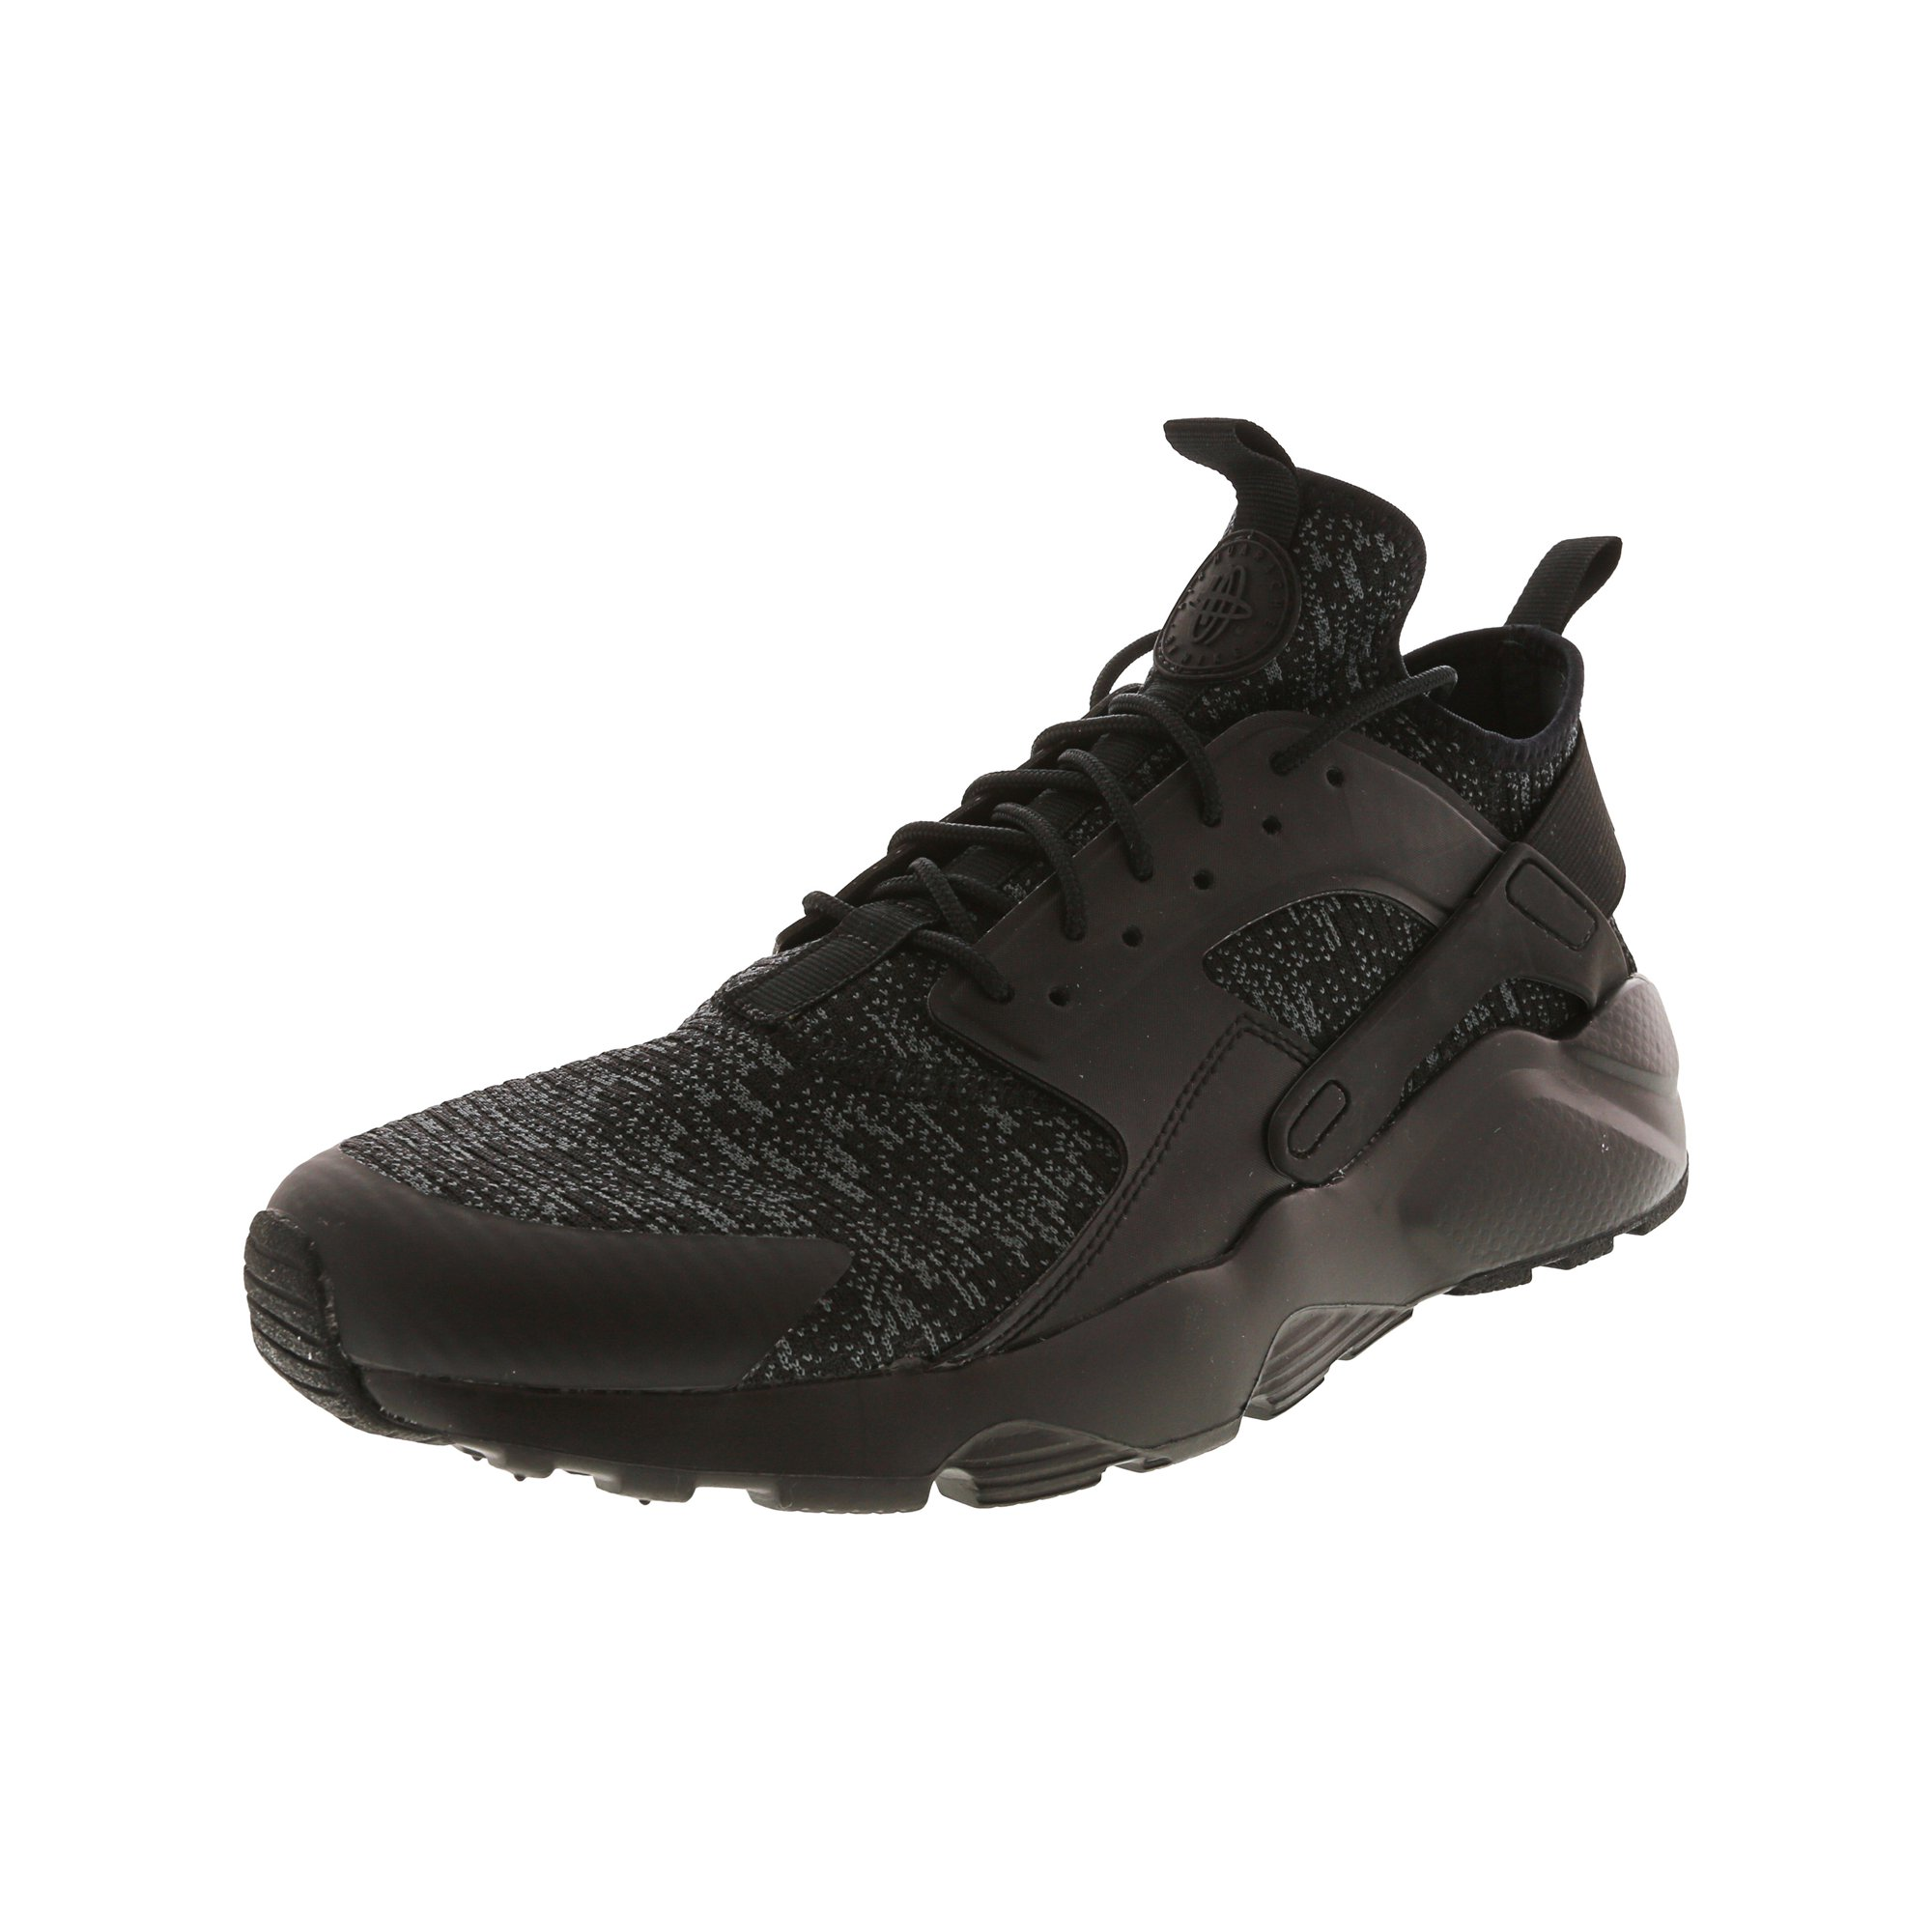 32e4501073f4 Nike Men s Air Huarache Run Ultra Se Black   - Dark Grey Ankle-High Fabric  Fashion Sneaker 11M